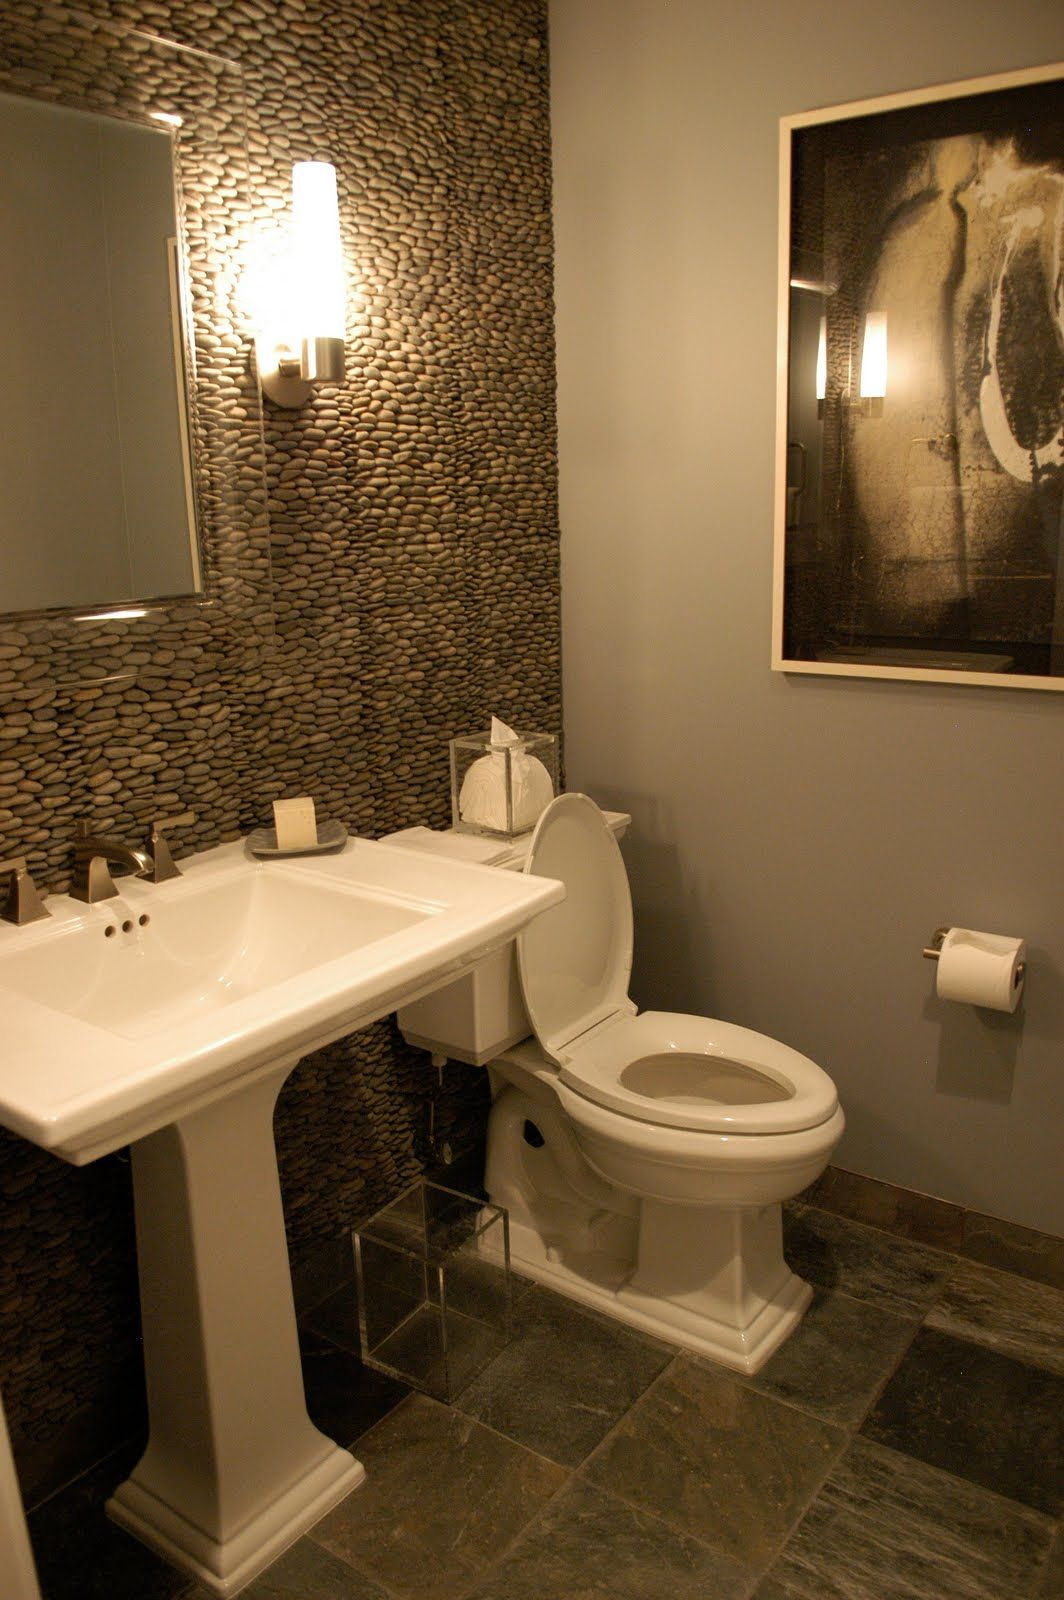 Powder Room Design Ideas Small Powder Room Ideas The Living Room In Amyes Recent Trump Tower Project